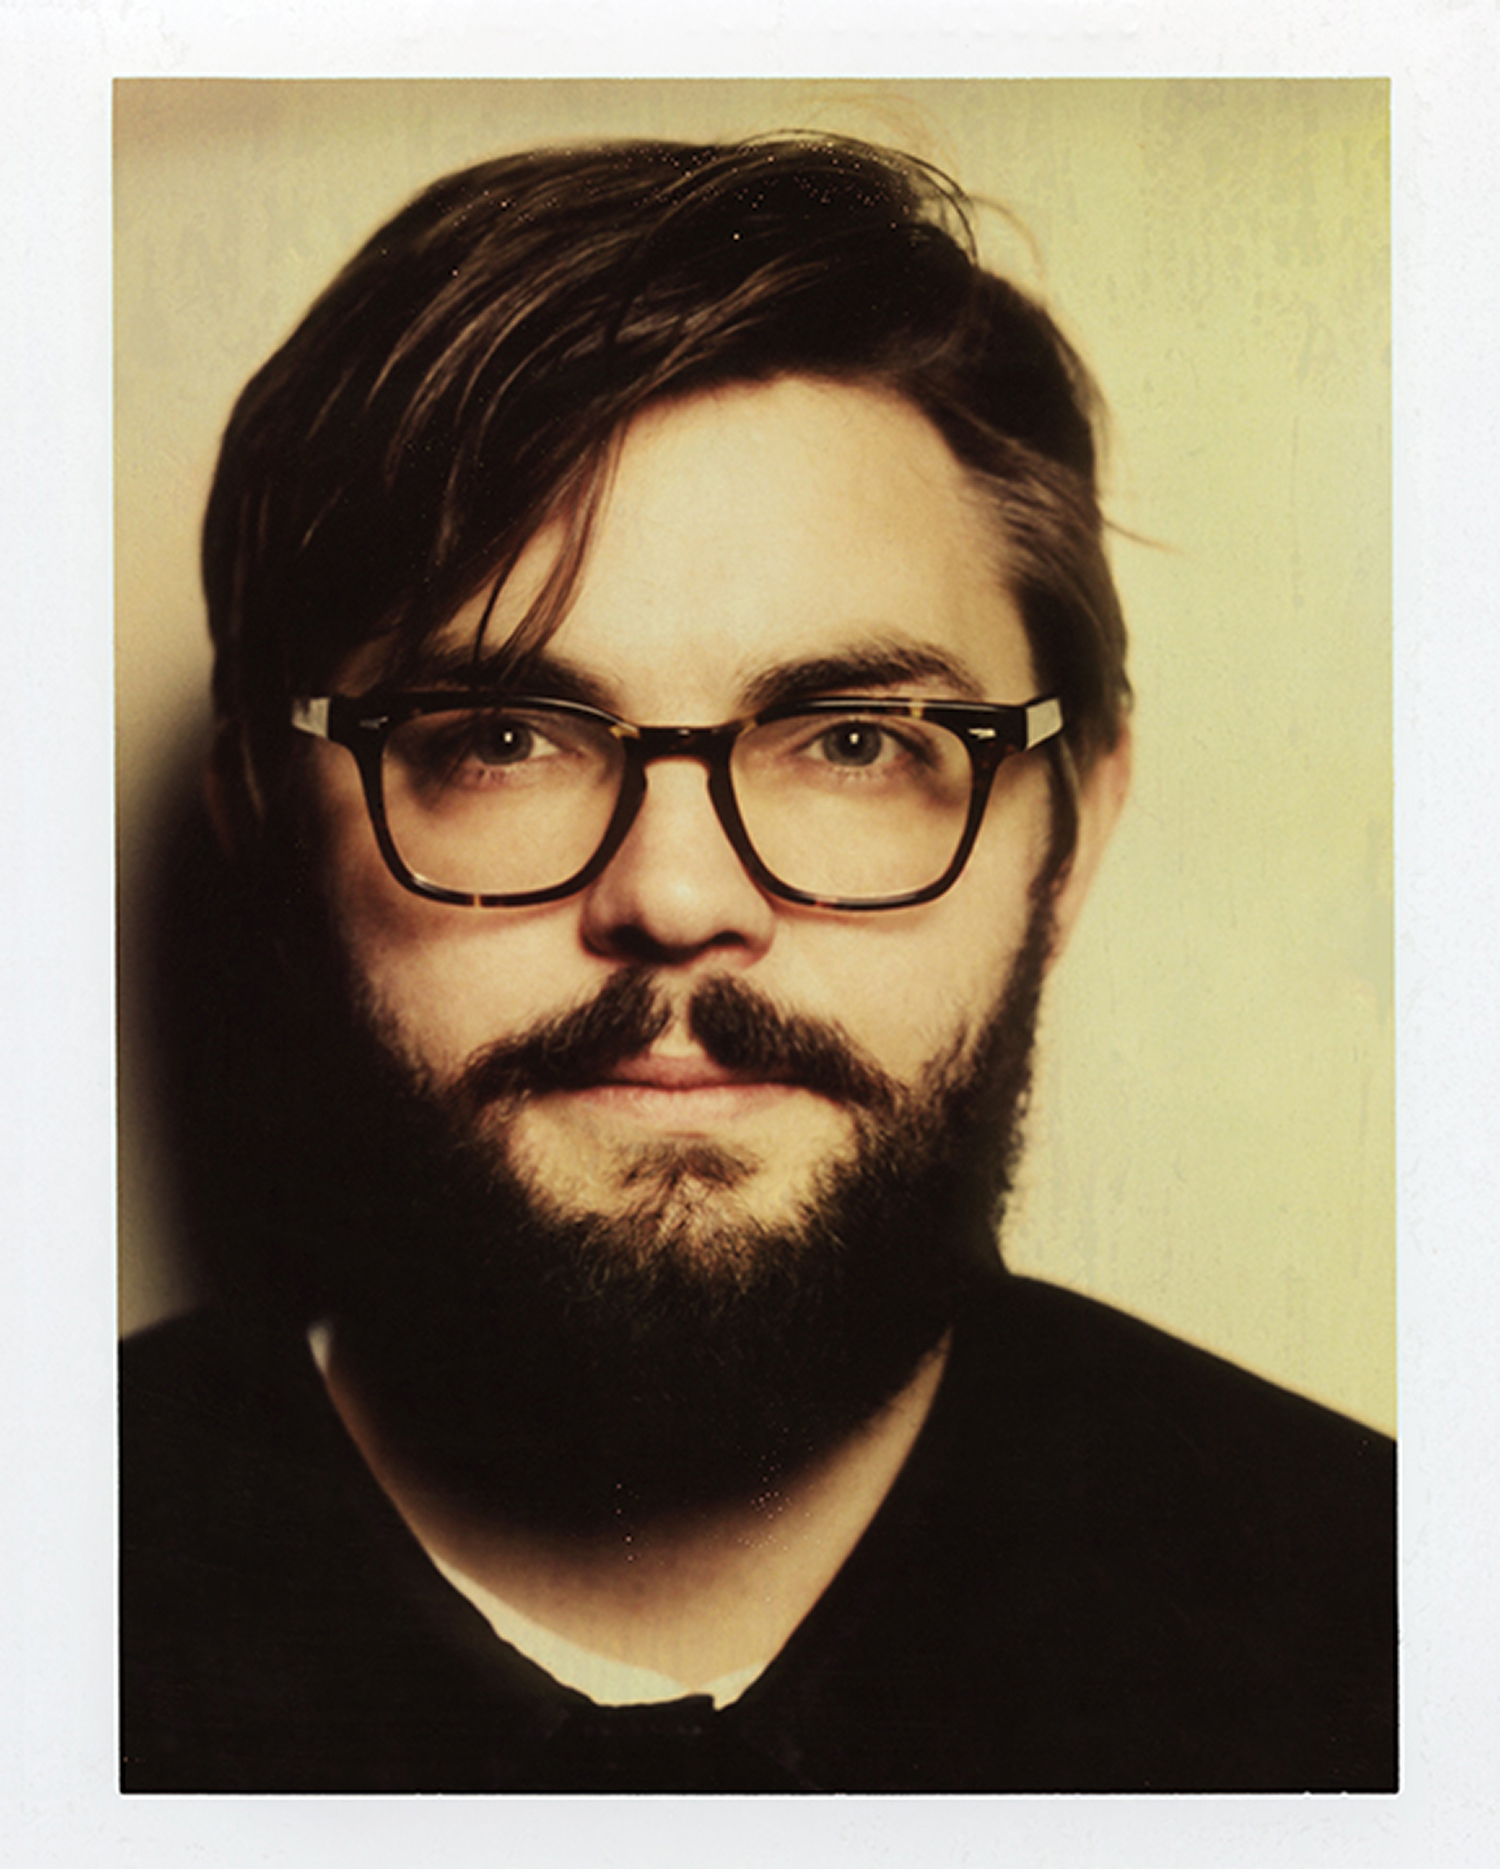 How Nick Thune Turns Tragedy Into Comedy